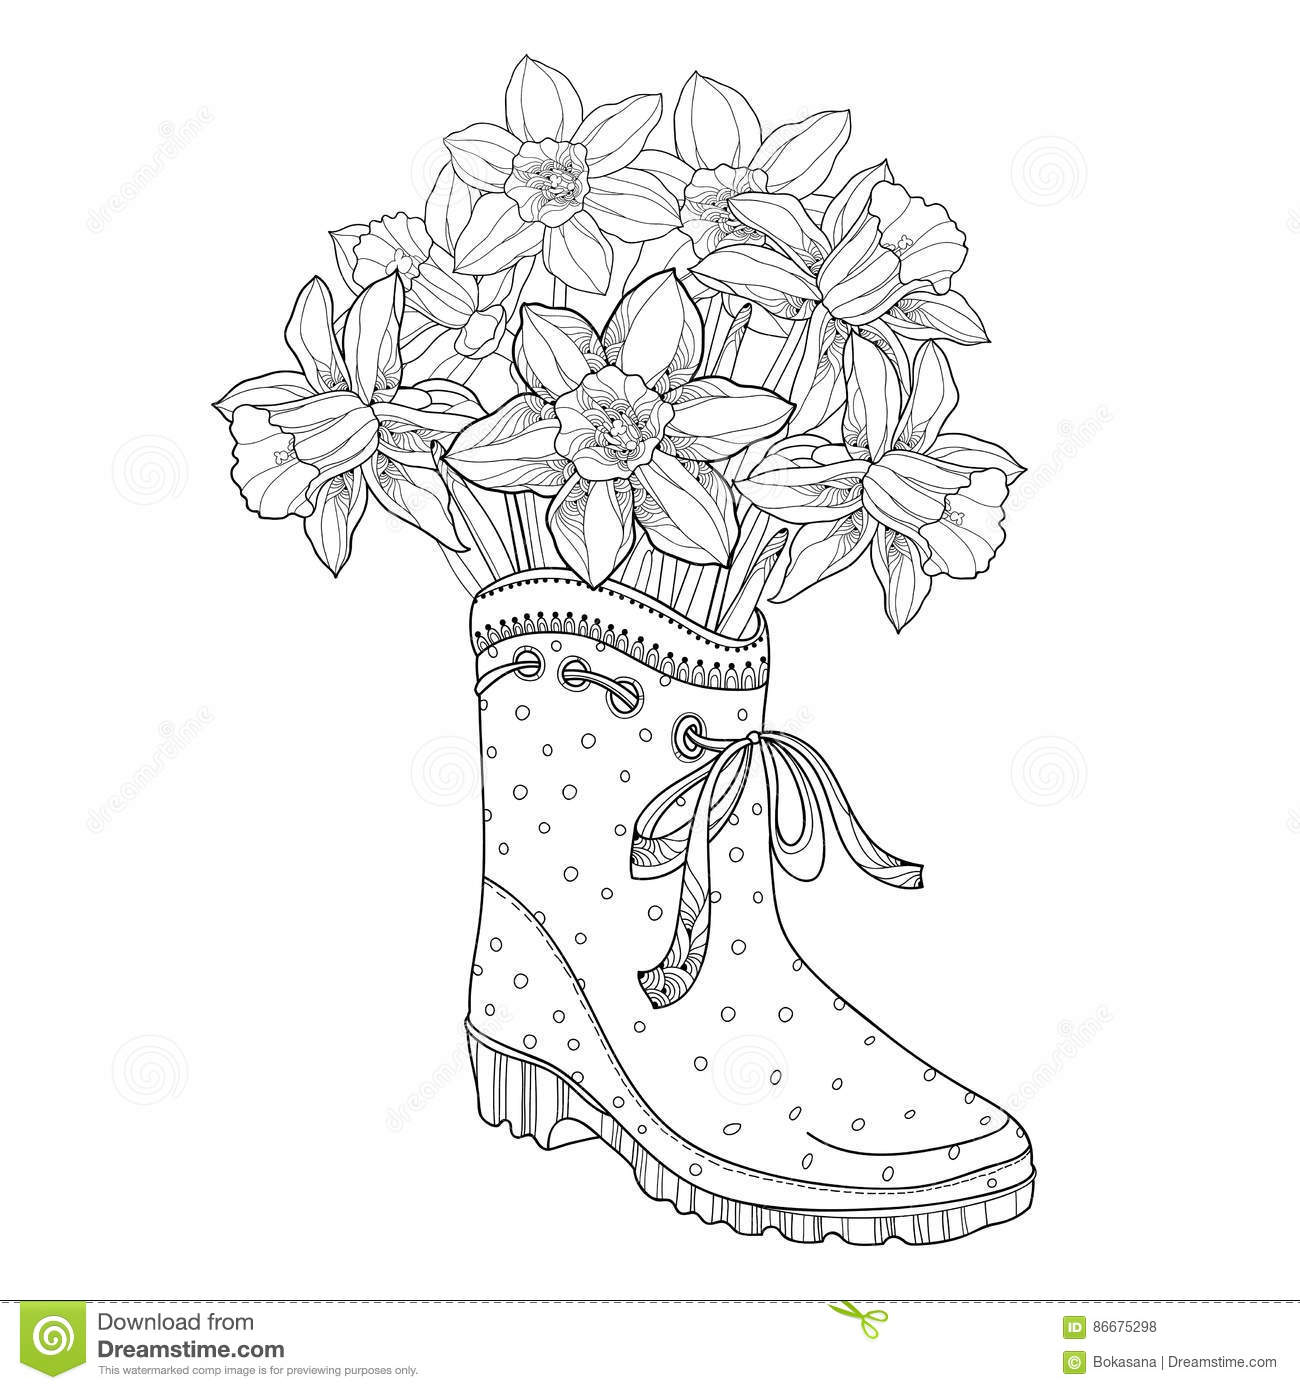 Vector Bouquet With Outline Narcissus Or Daffodil Flower In The